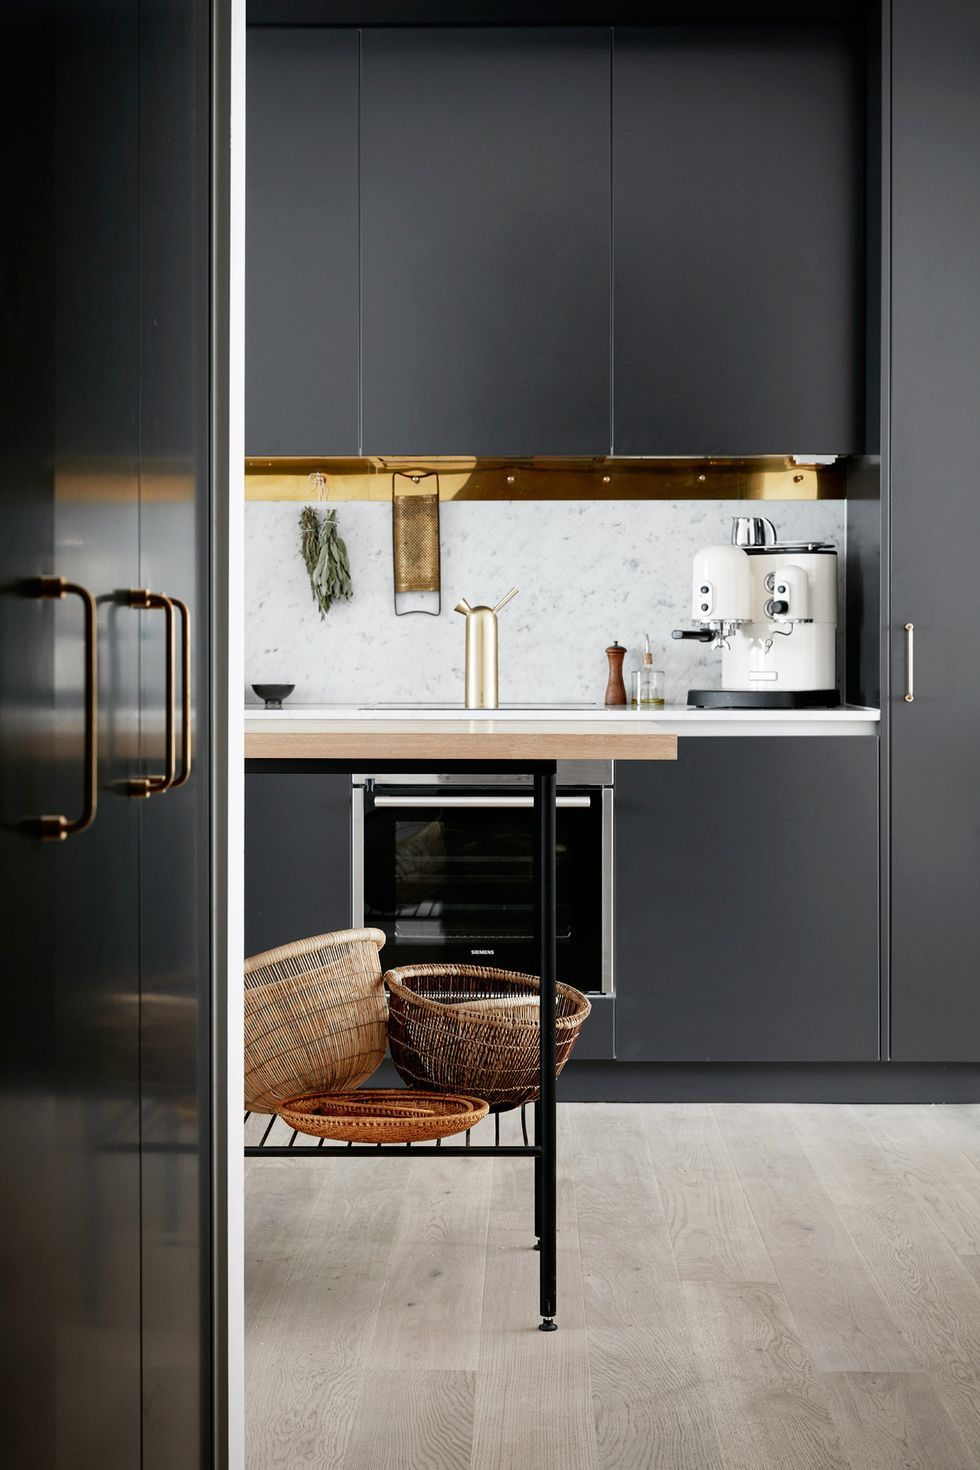 21 Kitchens With Black Cabinets That Make A Strong Case For The Edgy Trend In 2020 Interior Design Kitchen Kitchen Style Kitchen Trends